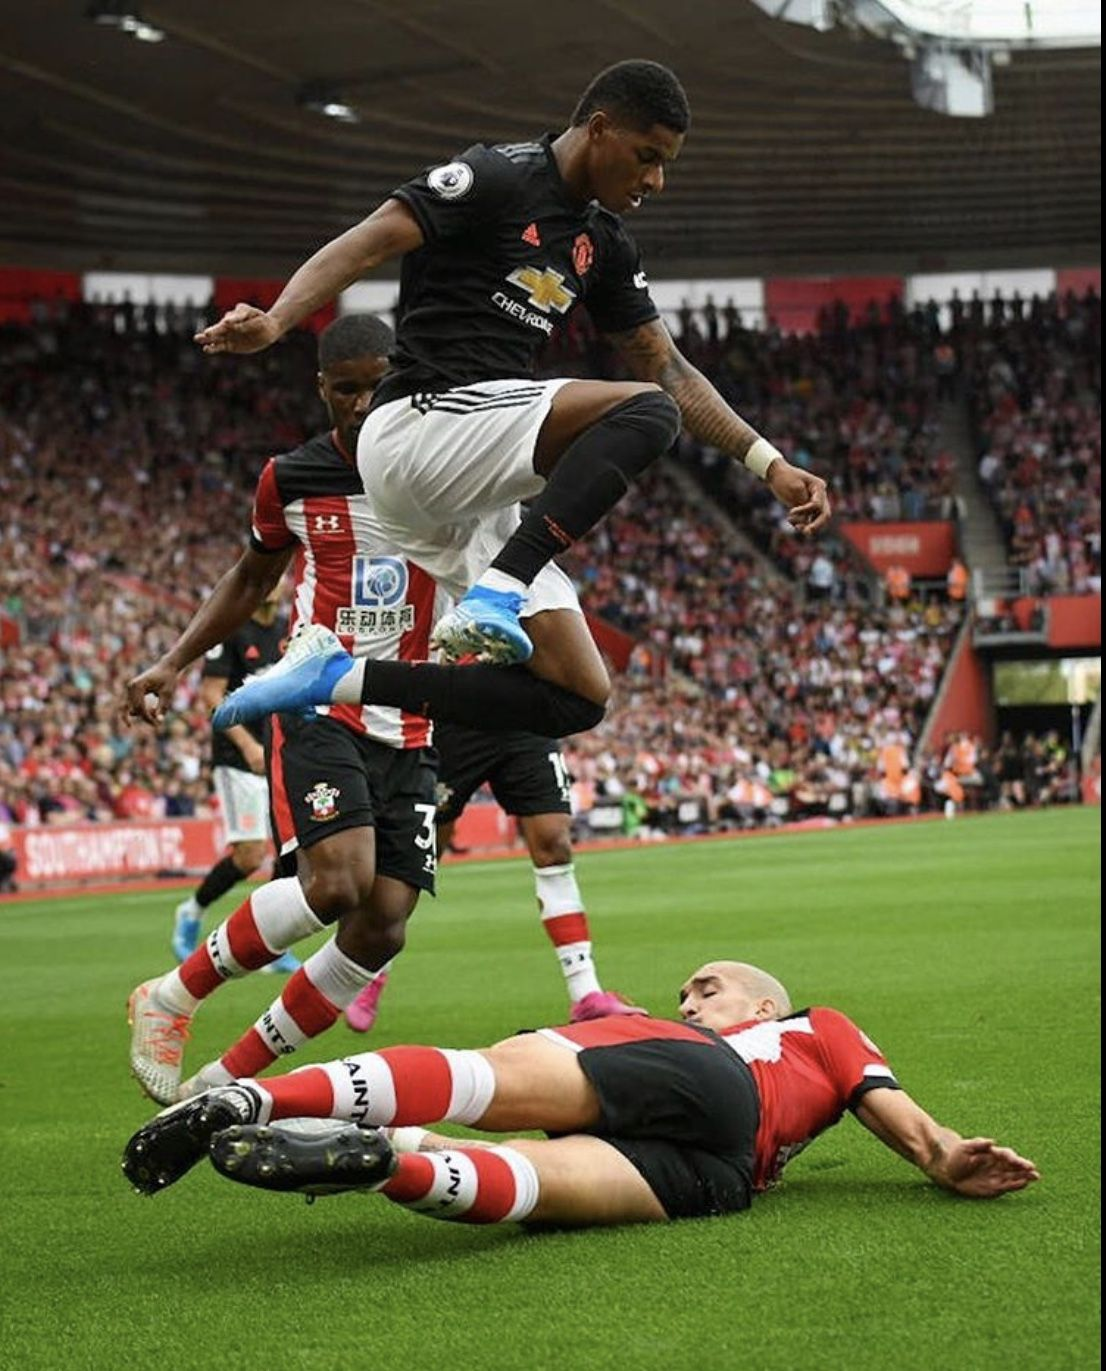 Pin by Safekungg on Manchester United Manchester united